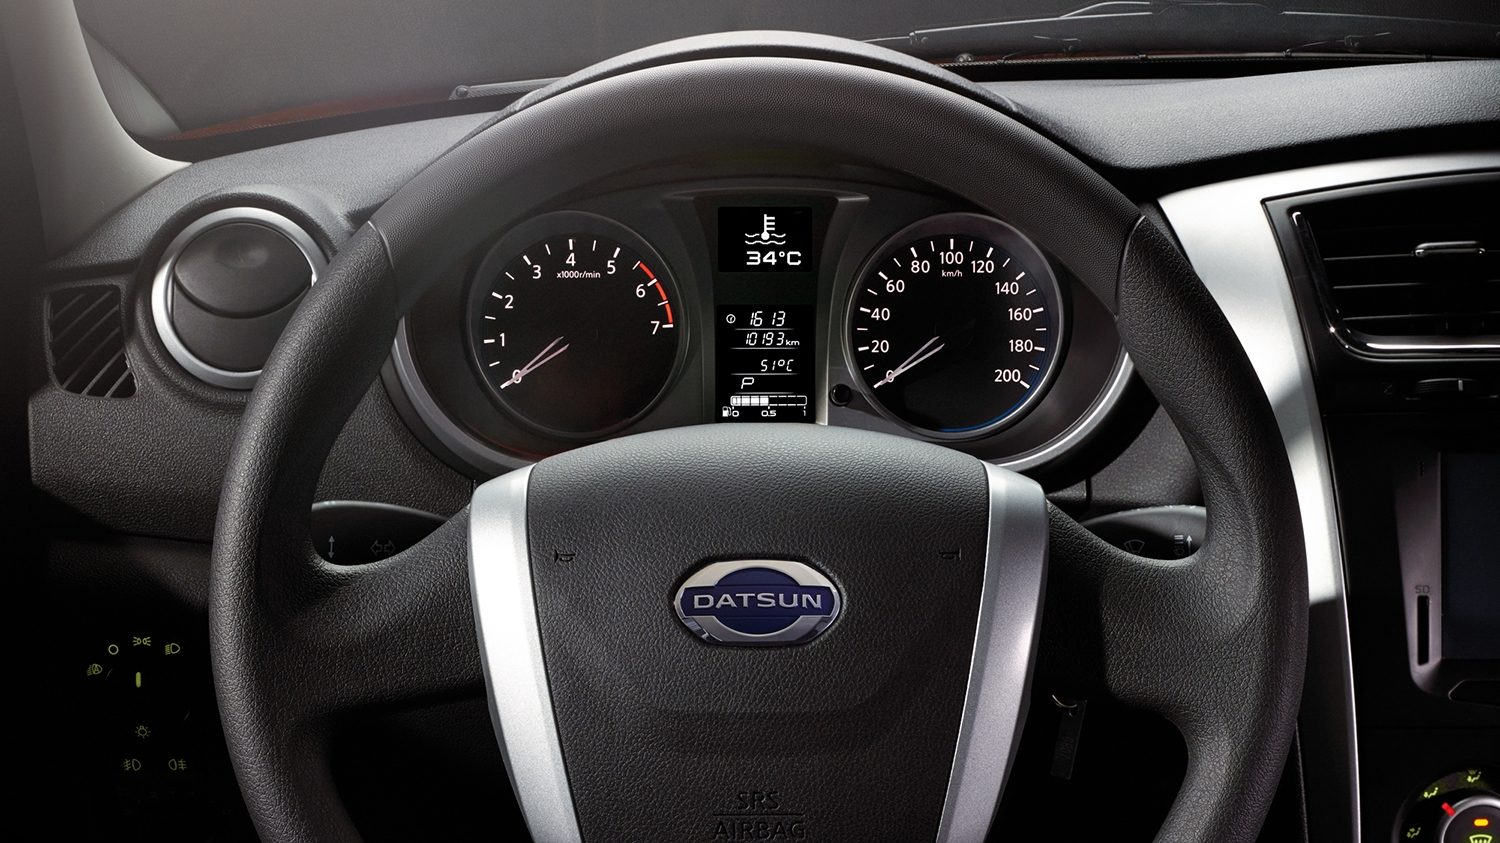 Interior Shot of Steering Wheel and Dash